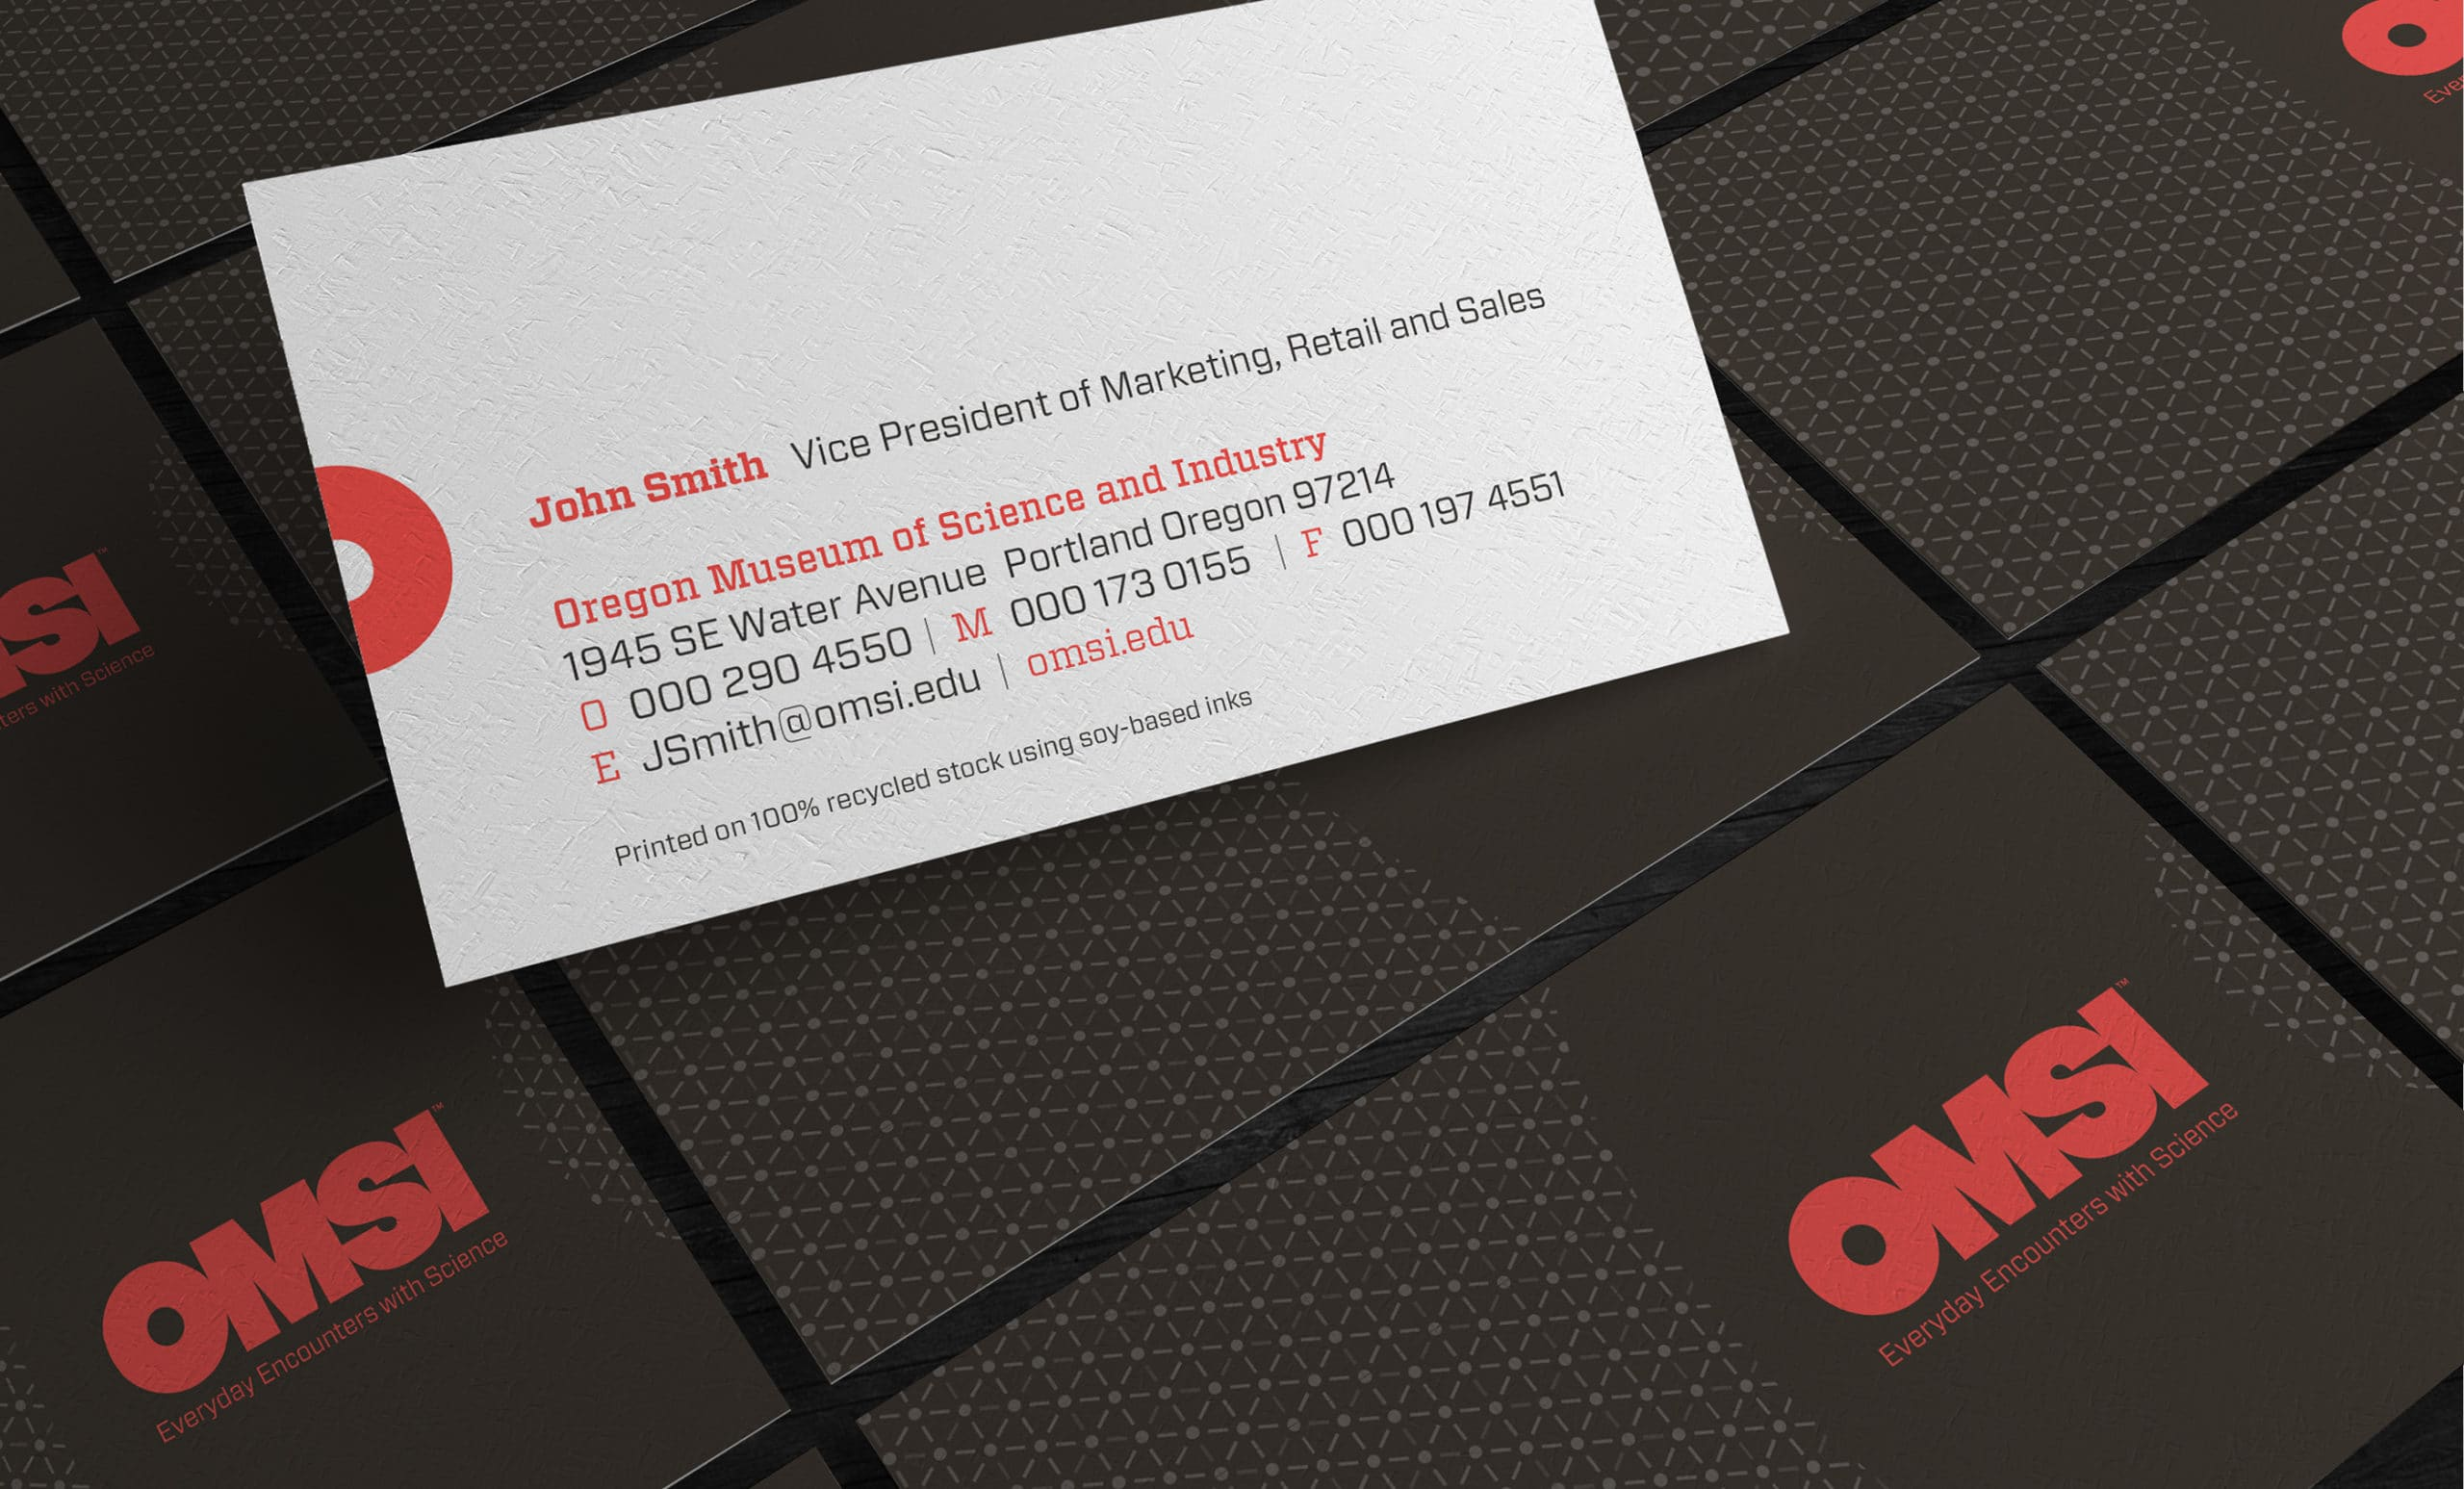 OMSI Business Card